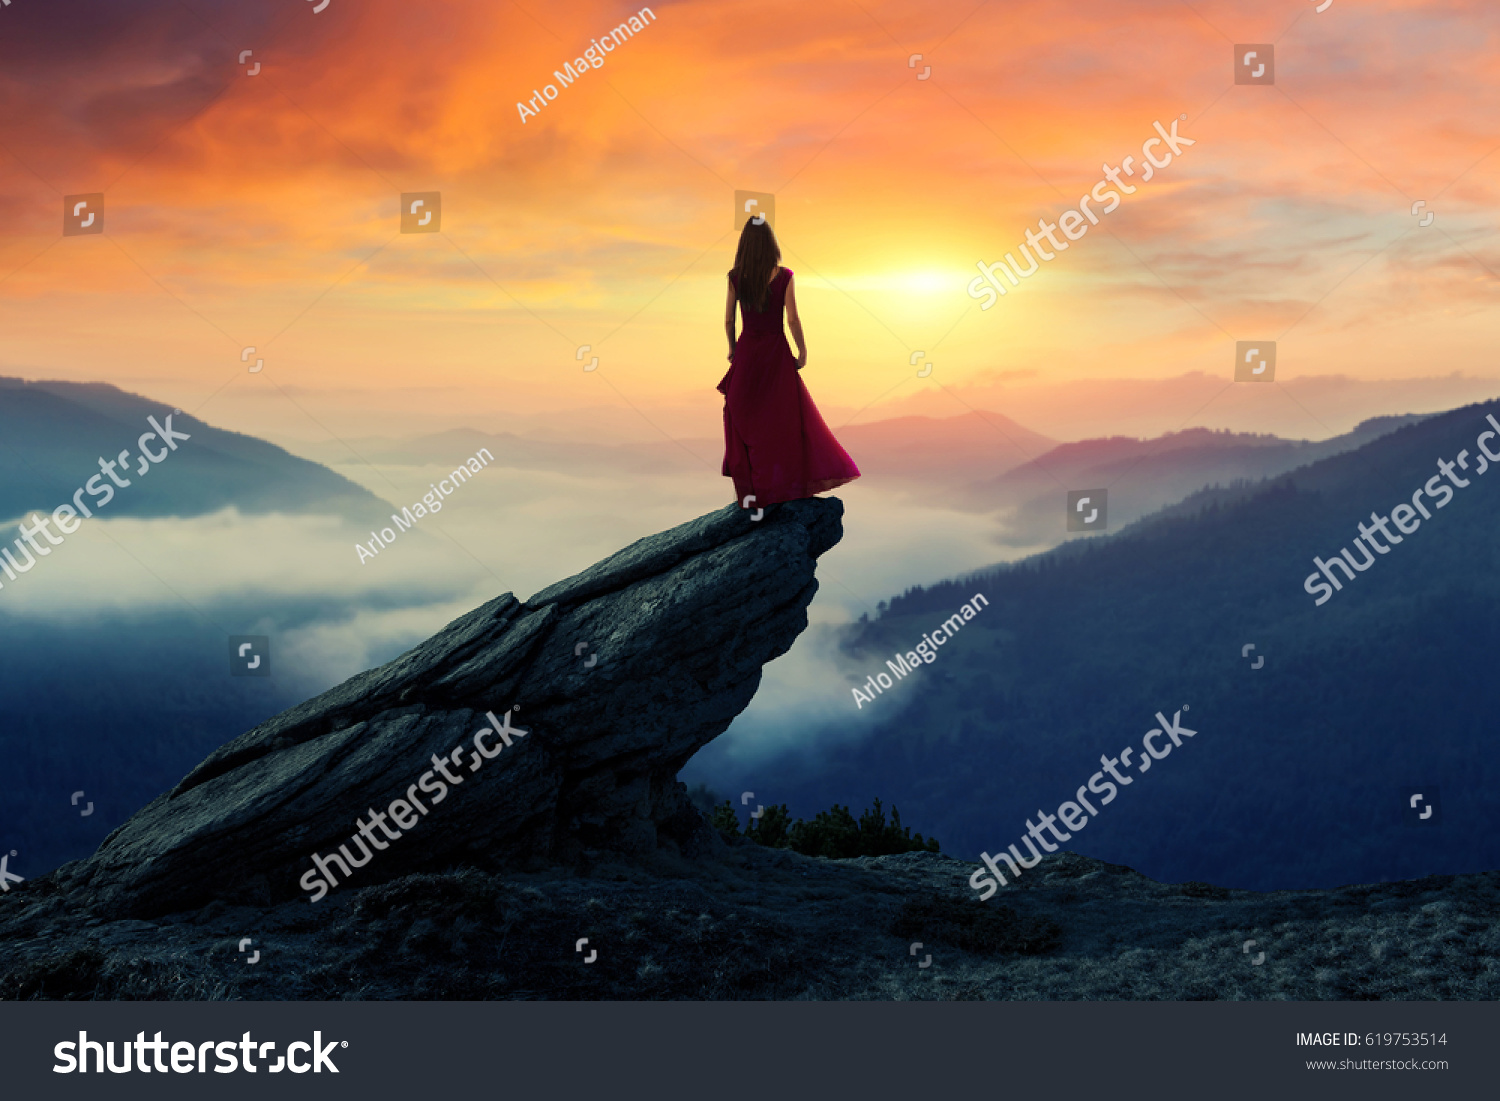 Fine art of a women standing alone on the top of a cliff in front of